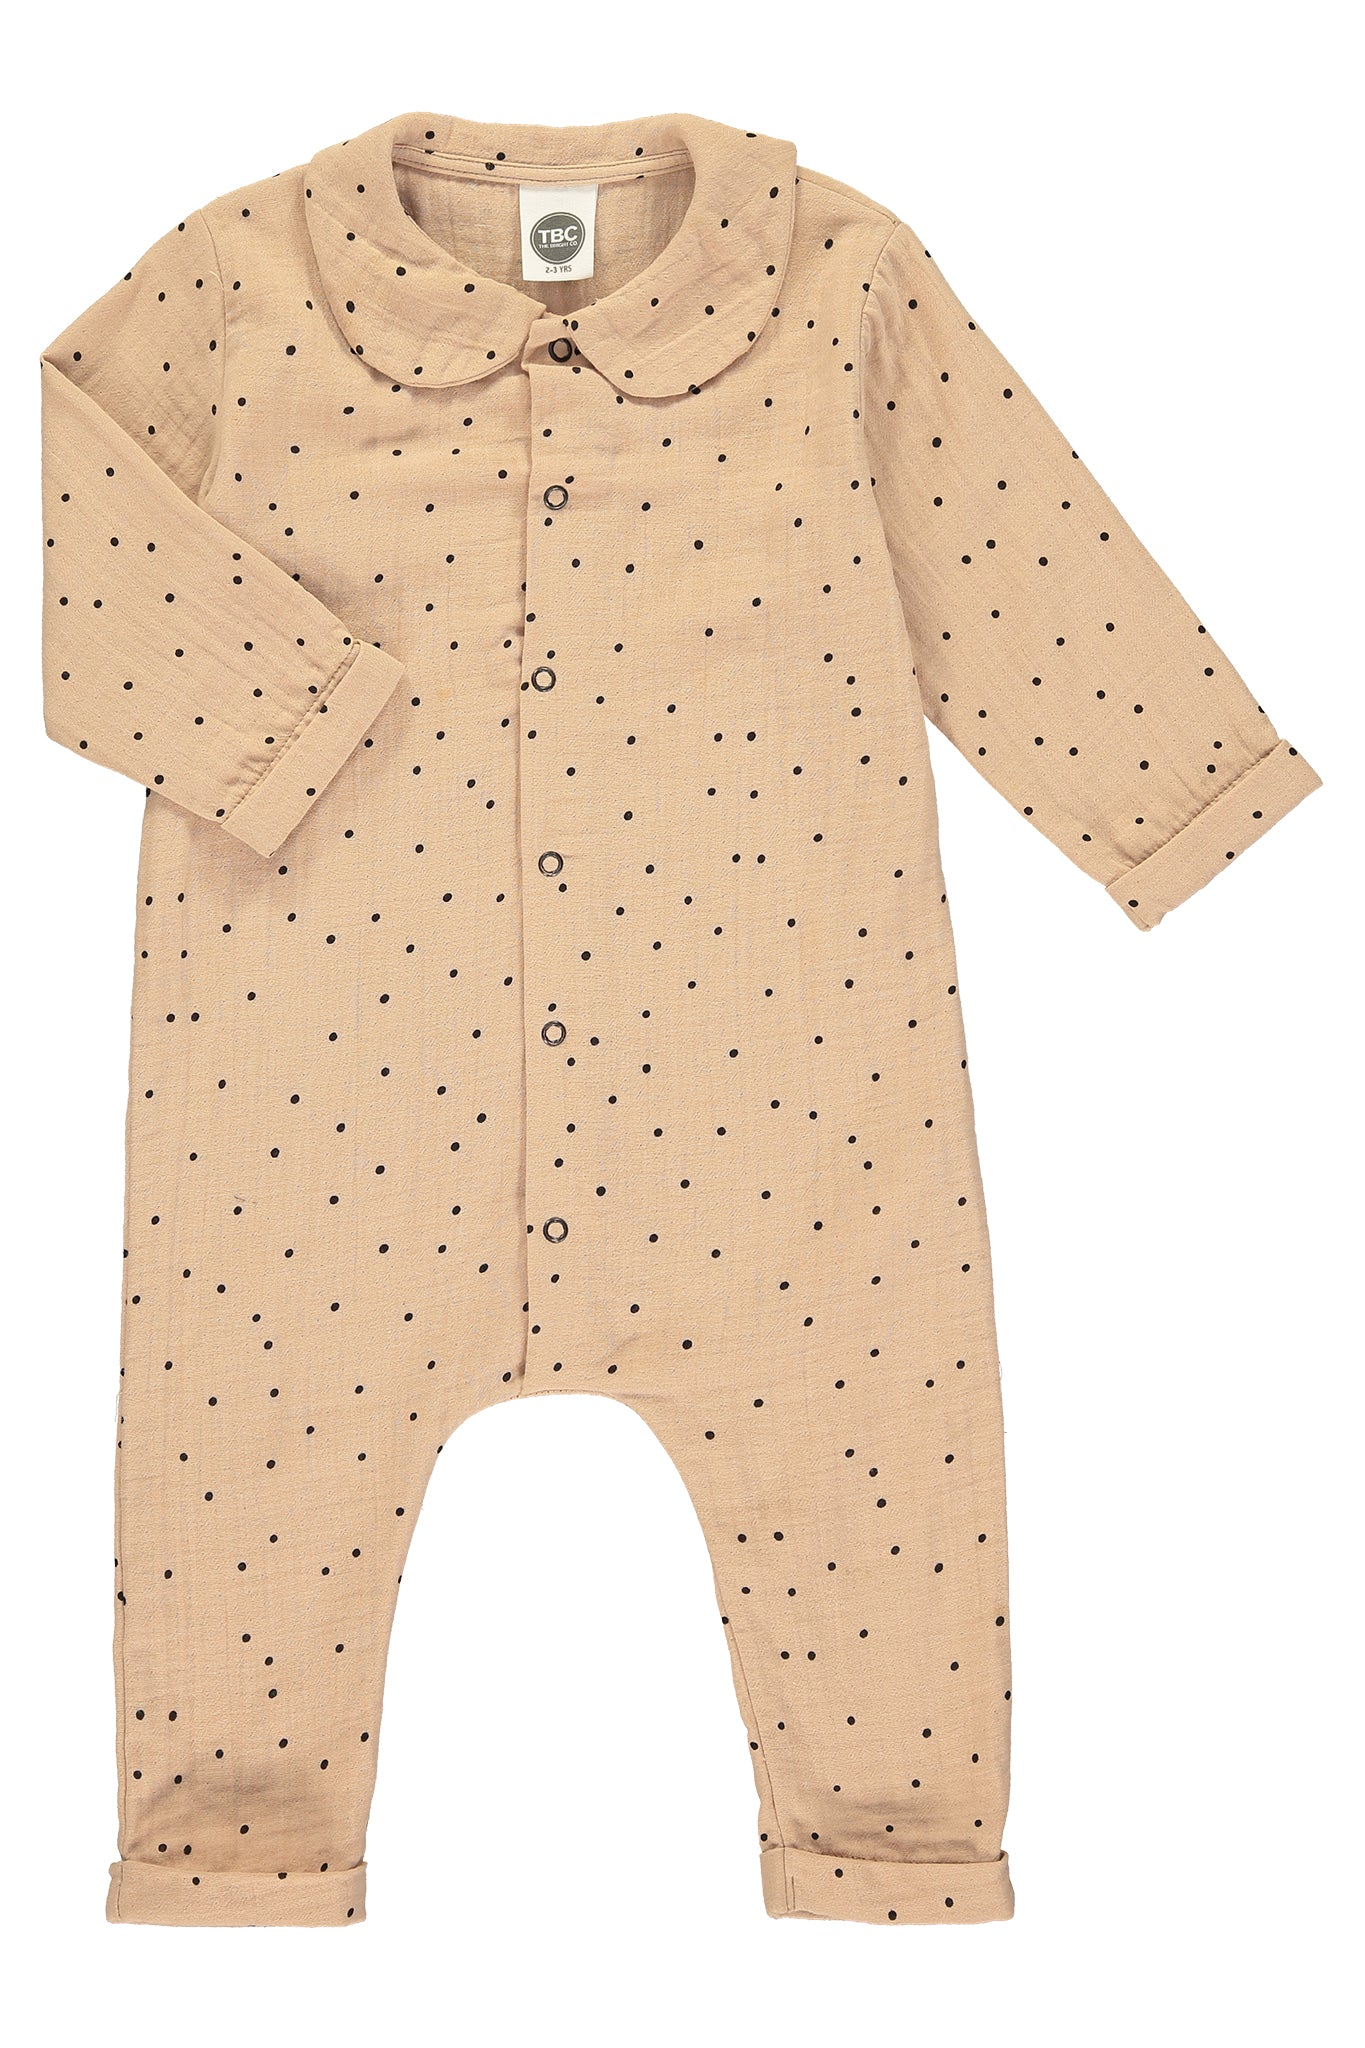 MUSLIN BABY SUIT - ROSE - The Bright Company